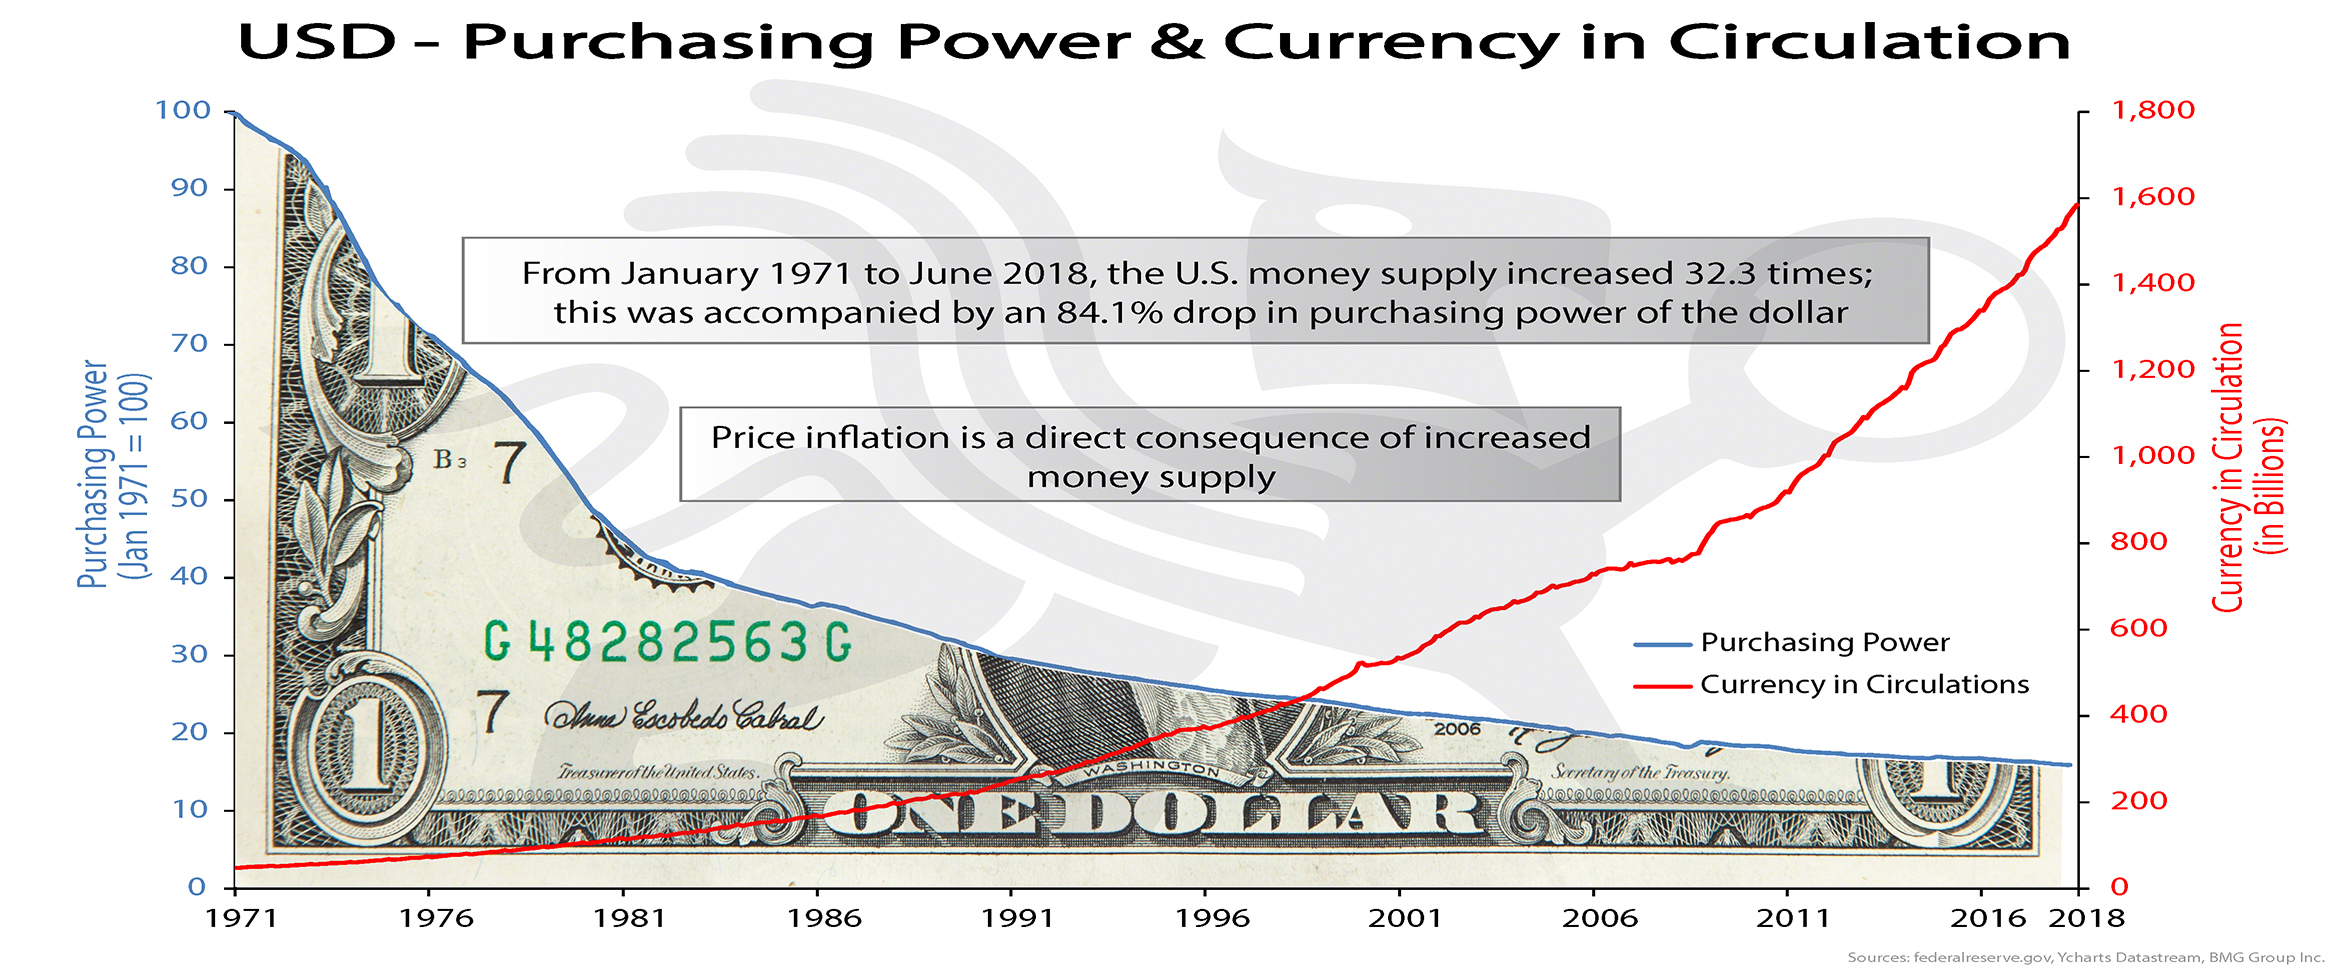 USD-Purchasing Power & Currency in Circulation | BullionBuzz Chart of the Week